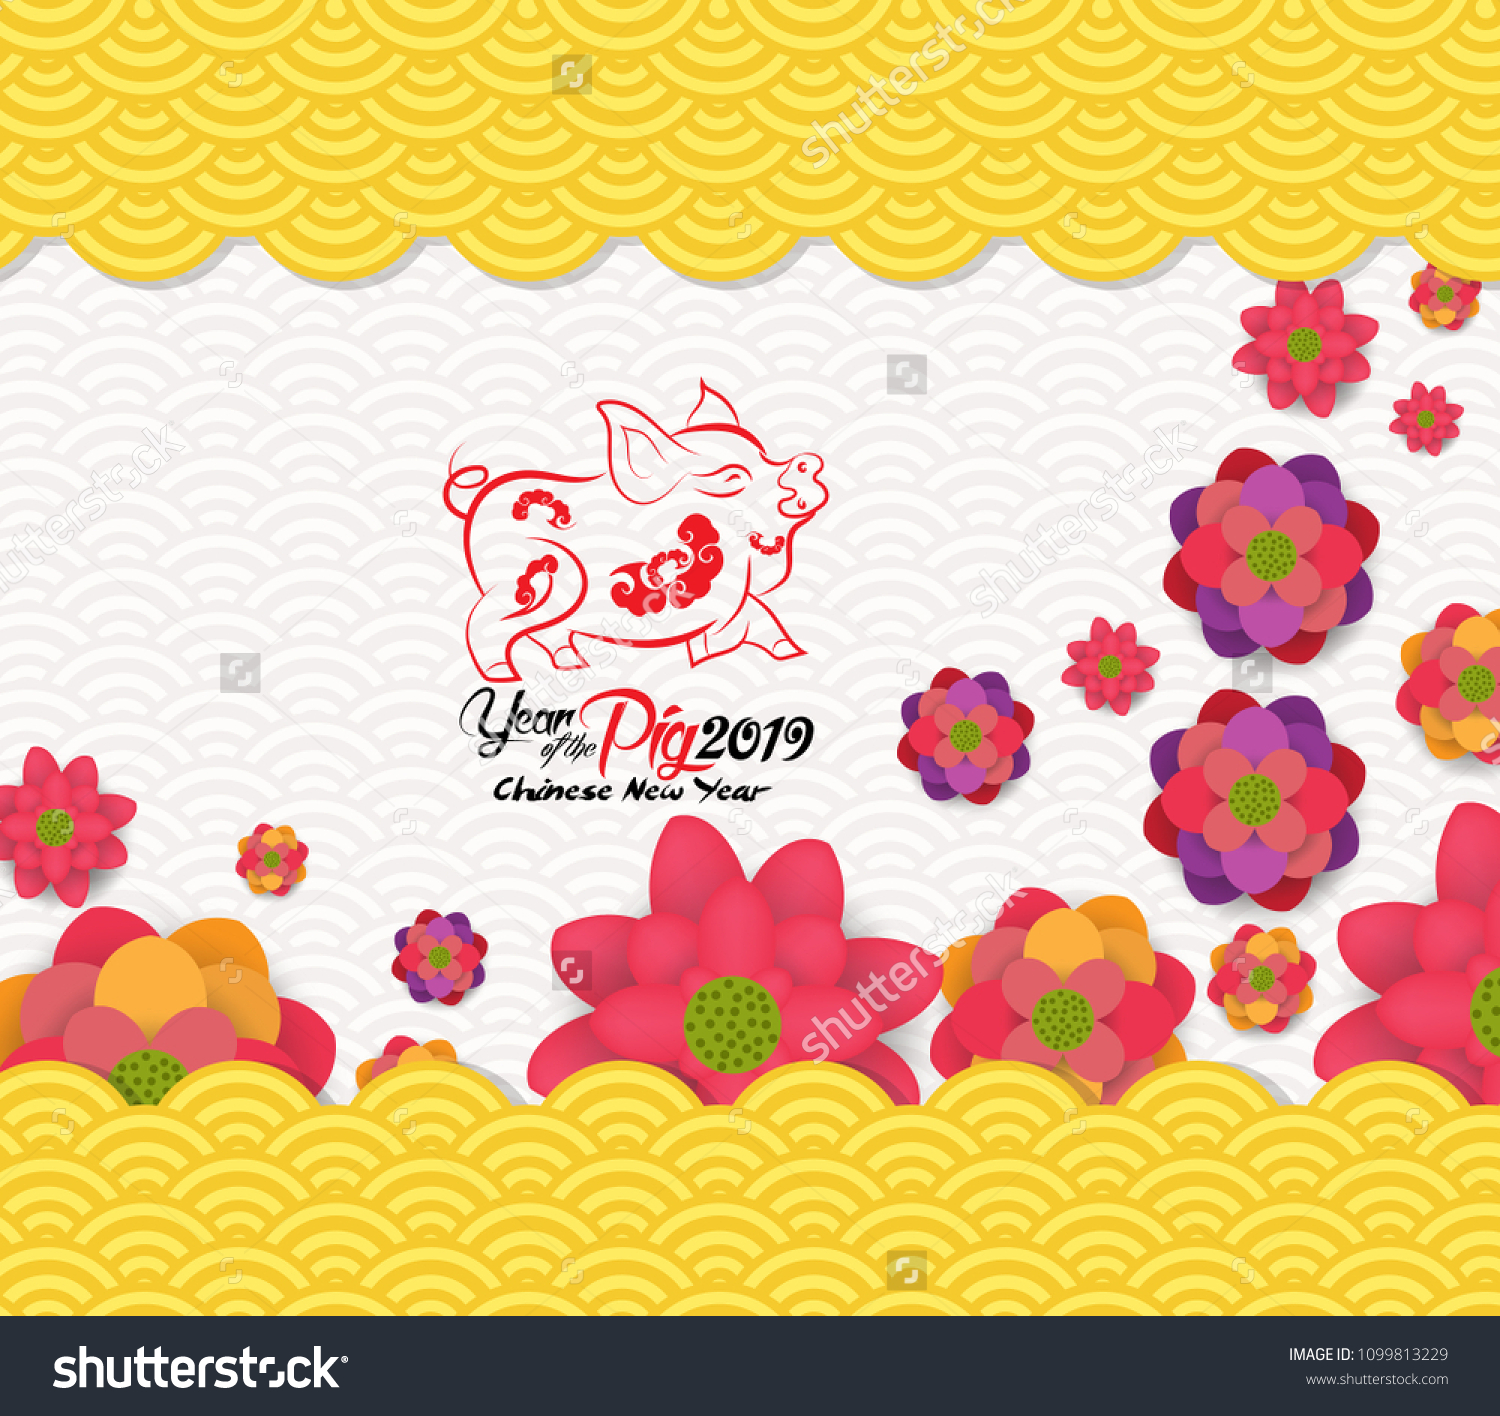 Chinese New Year 2019 Blossom Pattern Background Year Of The